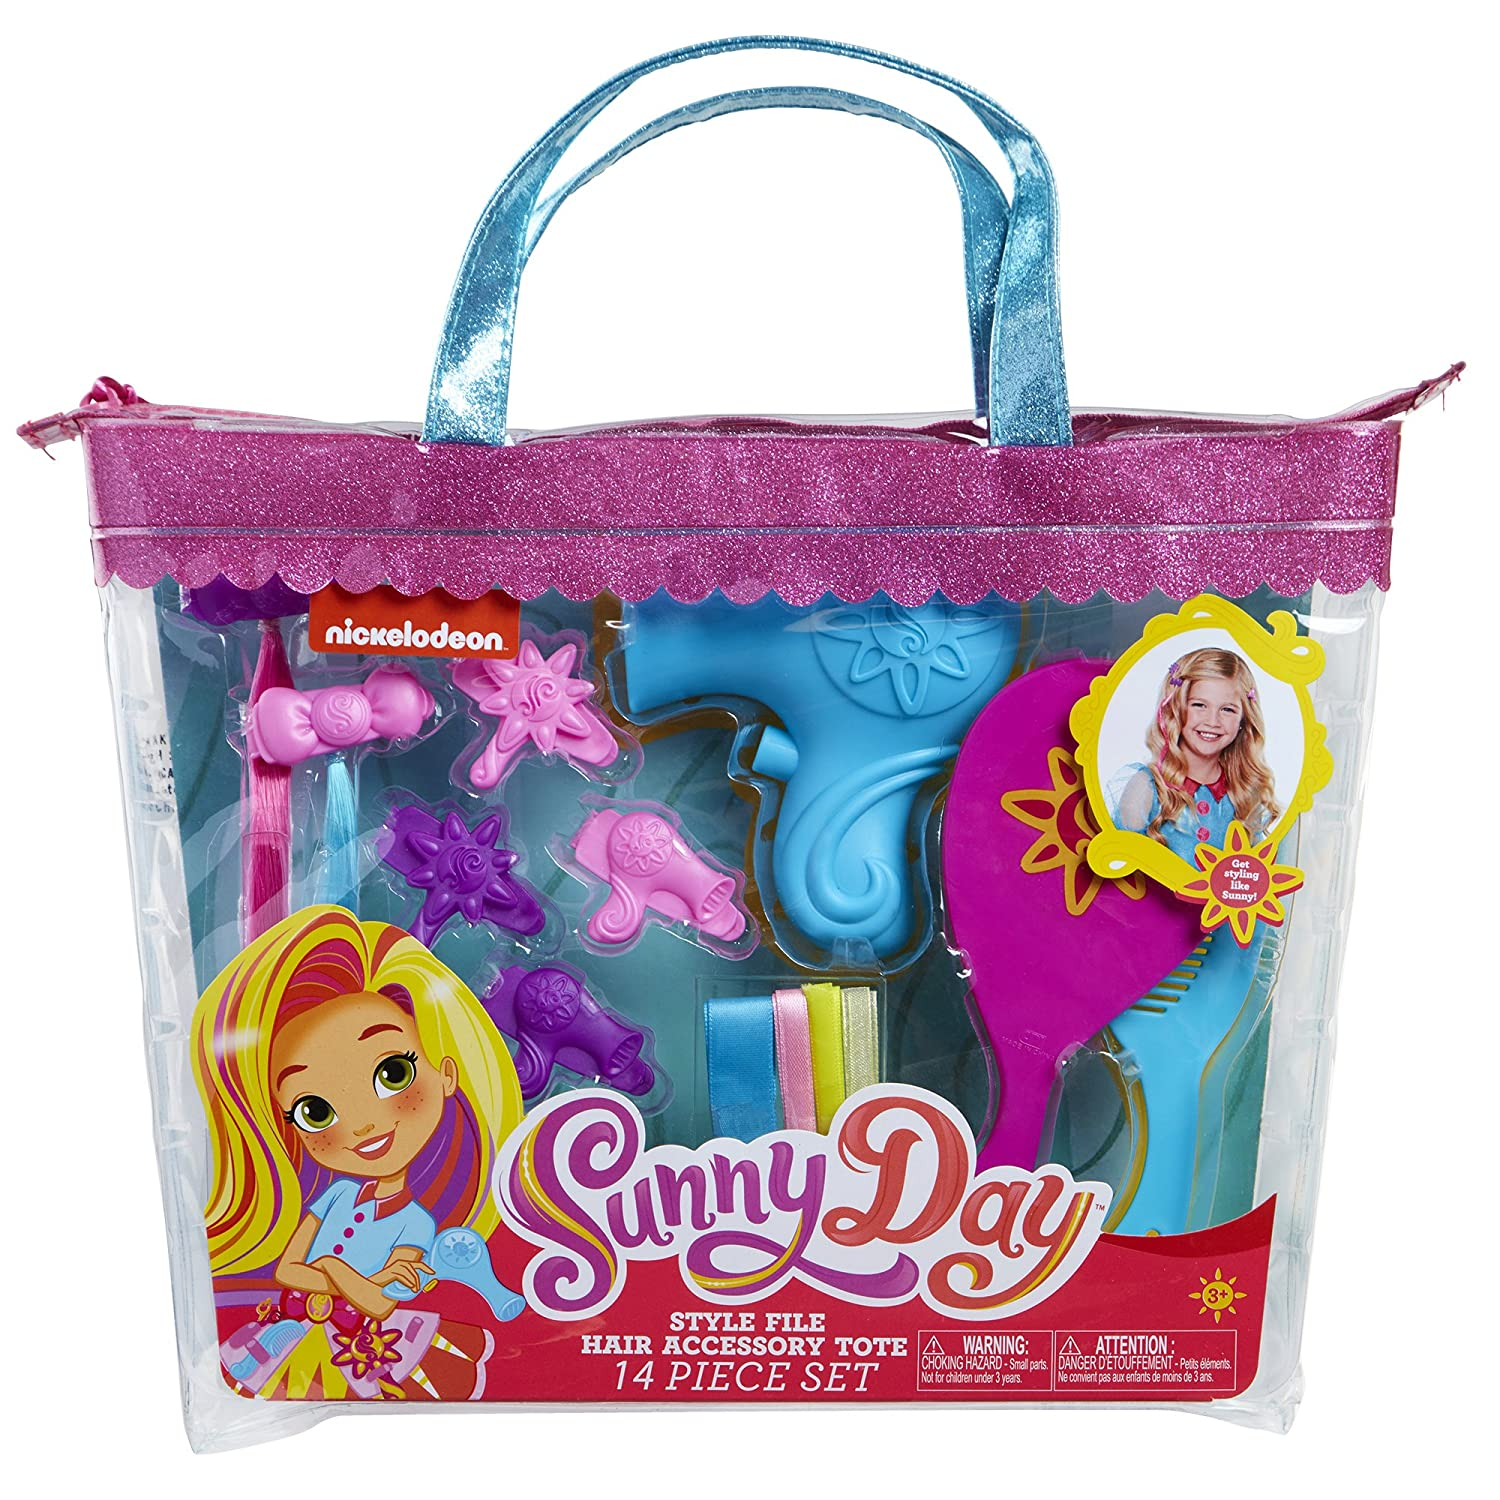 Sunny Day 8215 Sunny Da Hair Style File Accessory Tote Set 14 Piece Pink Blue